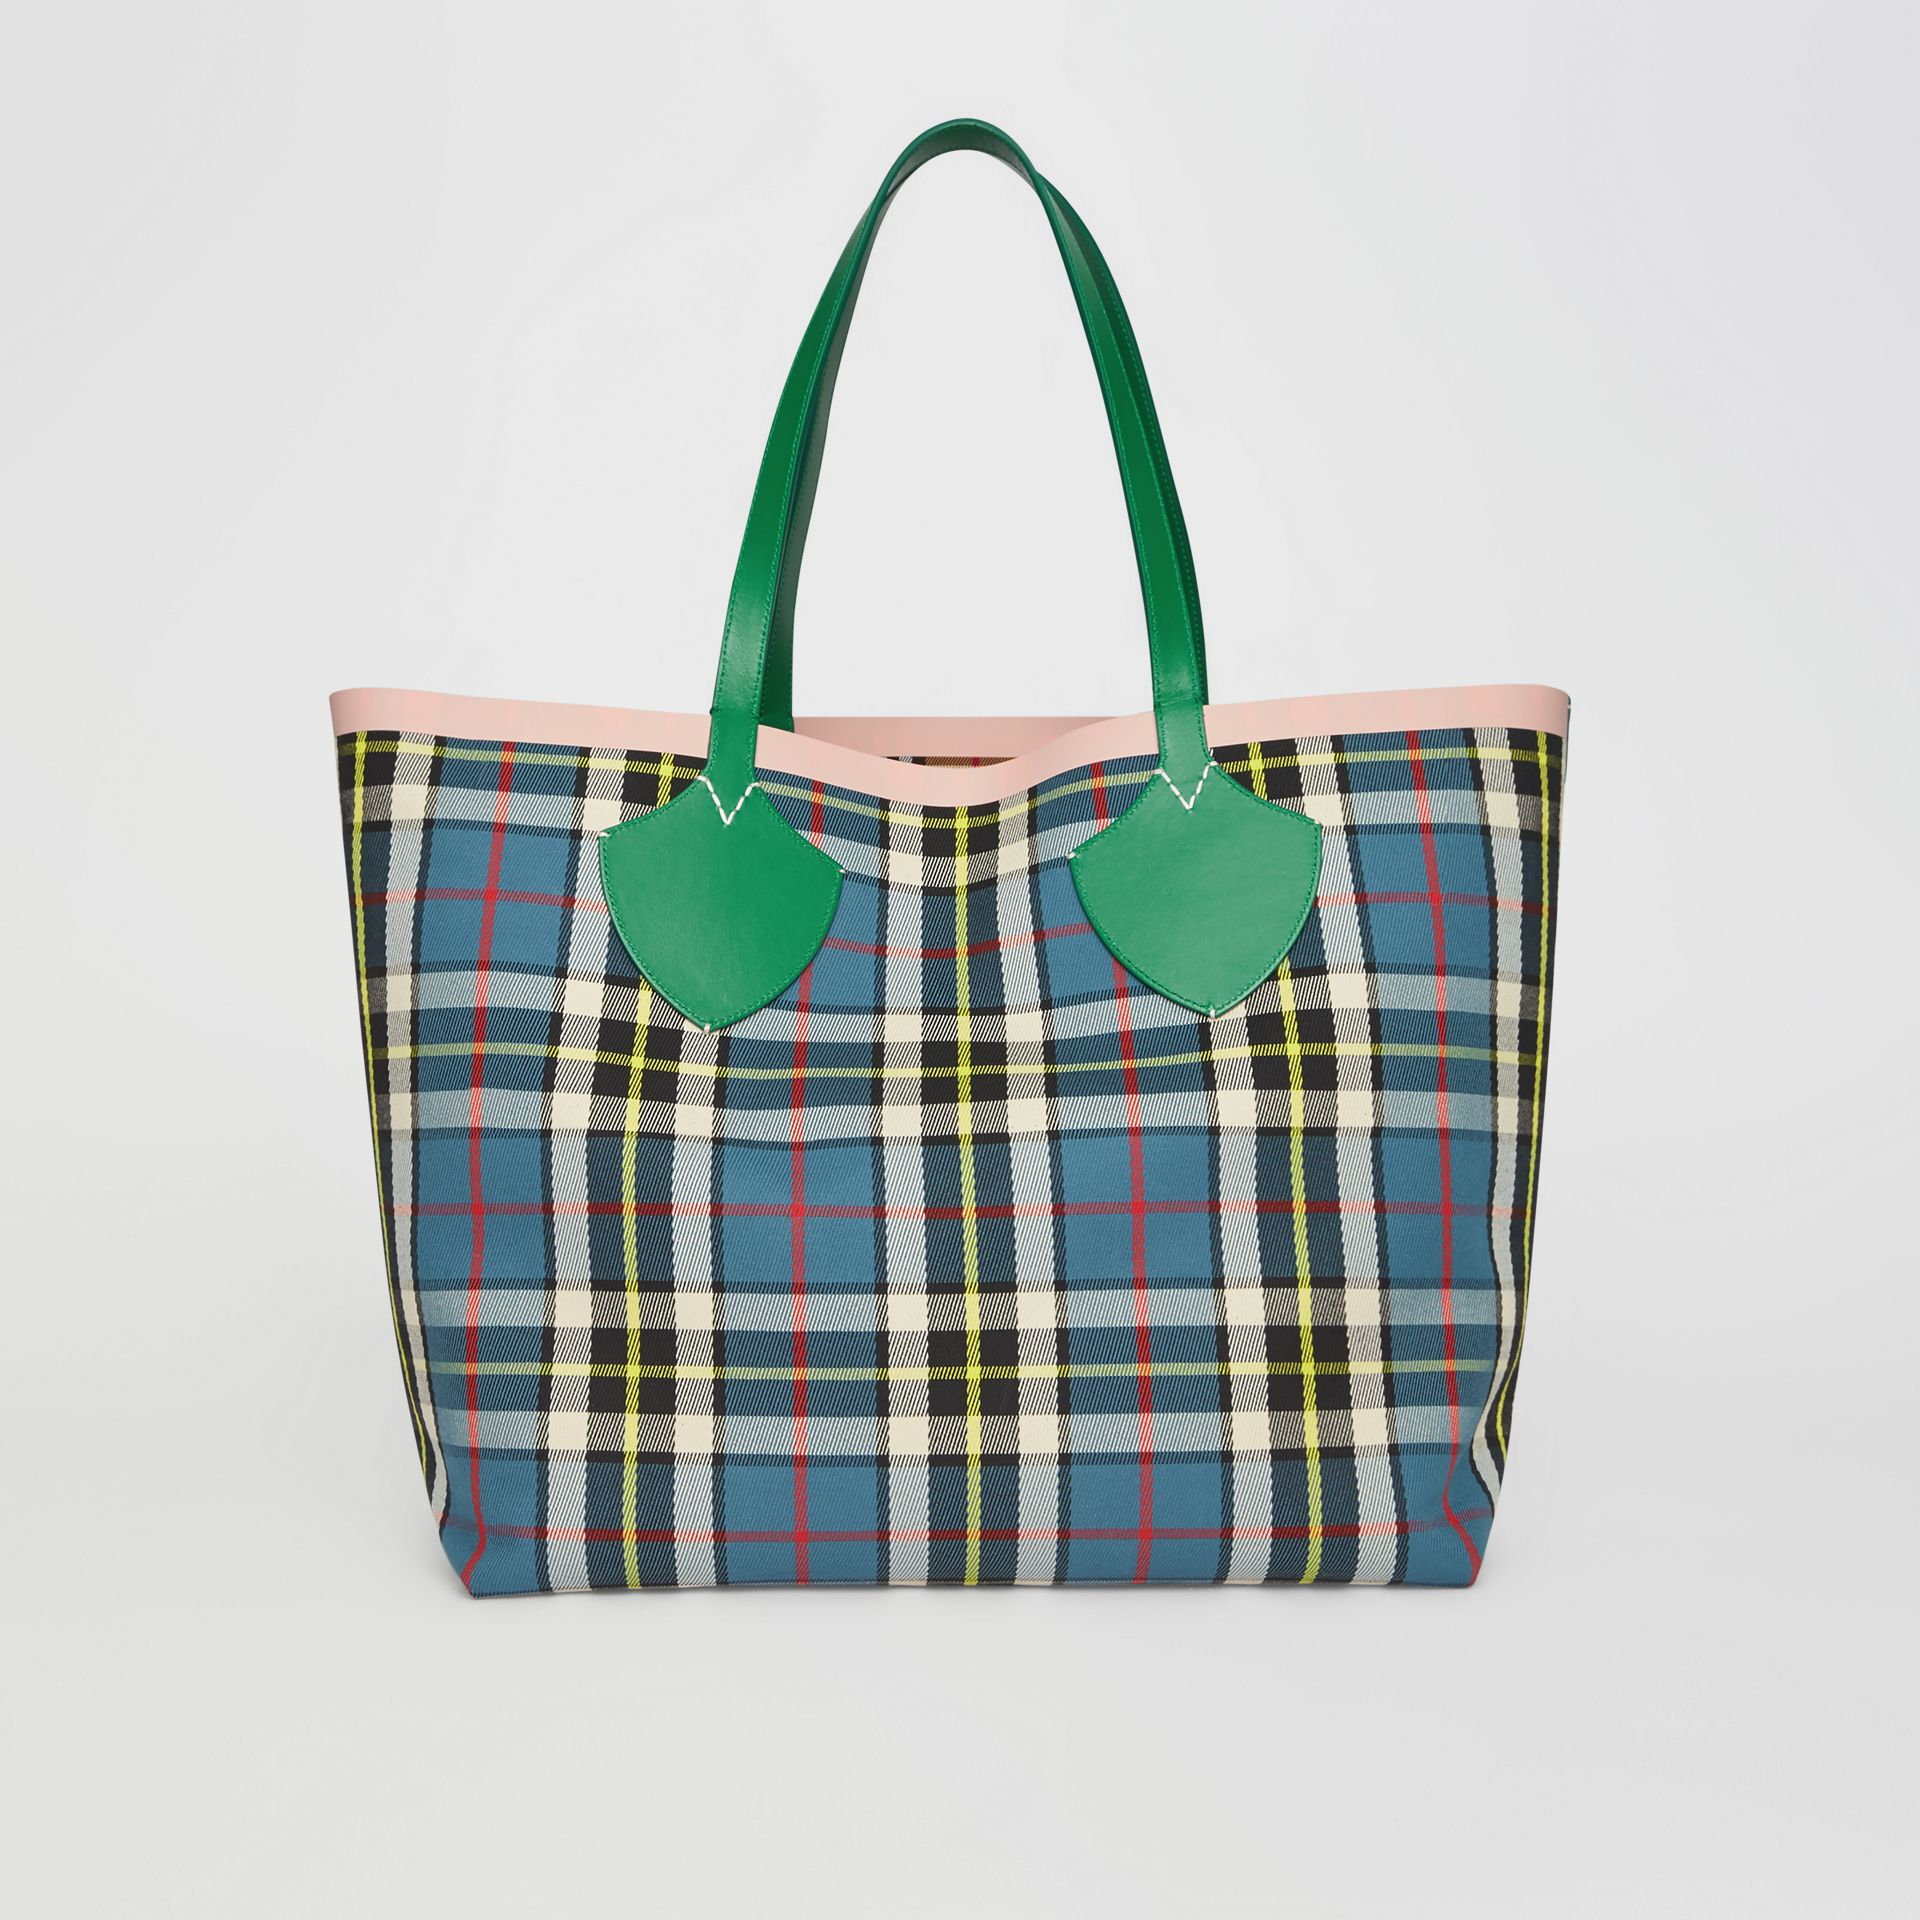 Sac tote The Giant réversible à motif Vintage check (Vert Sombre/abricot Rose) - Femme | Burberry Canada - photo de la galerie 9